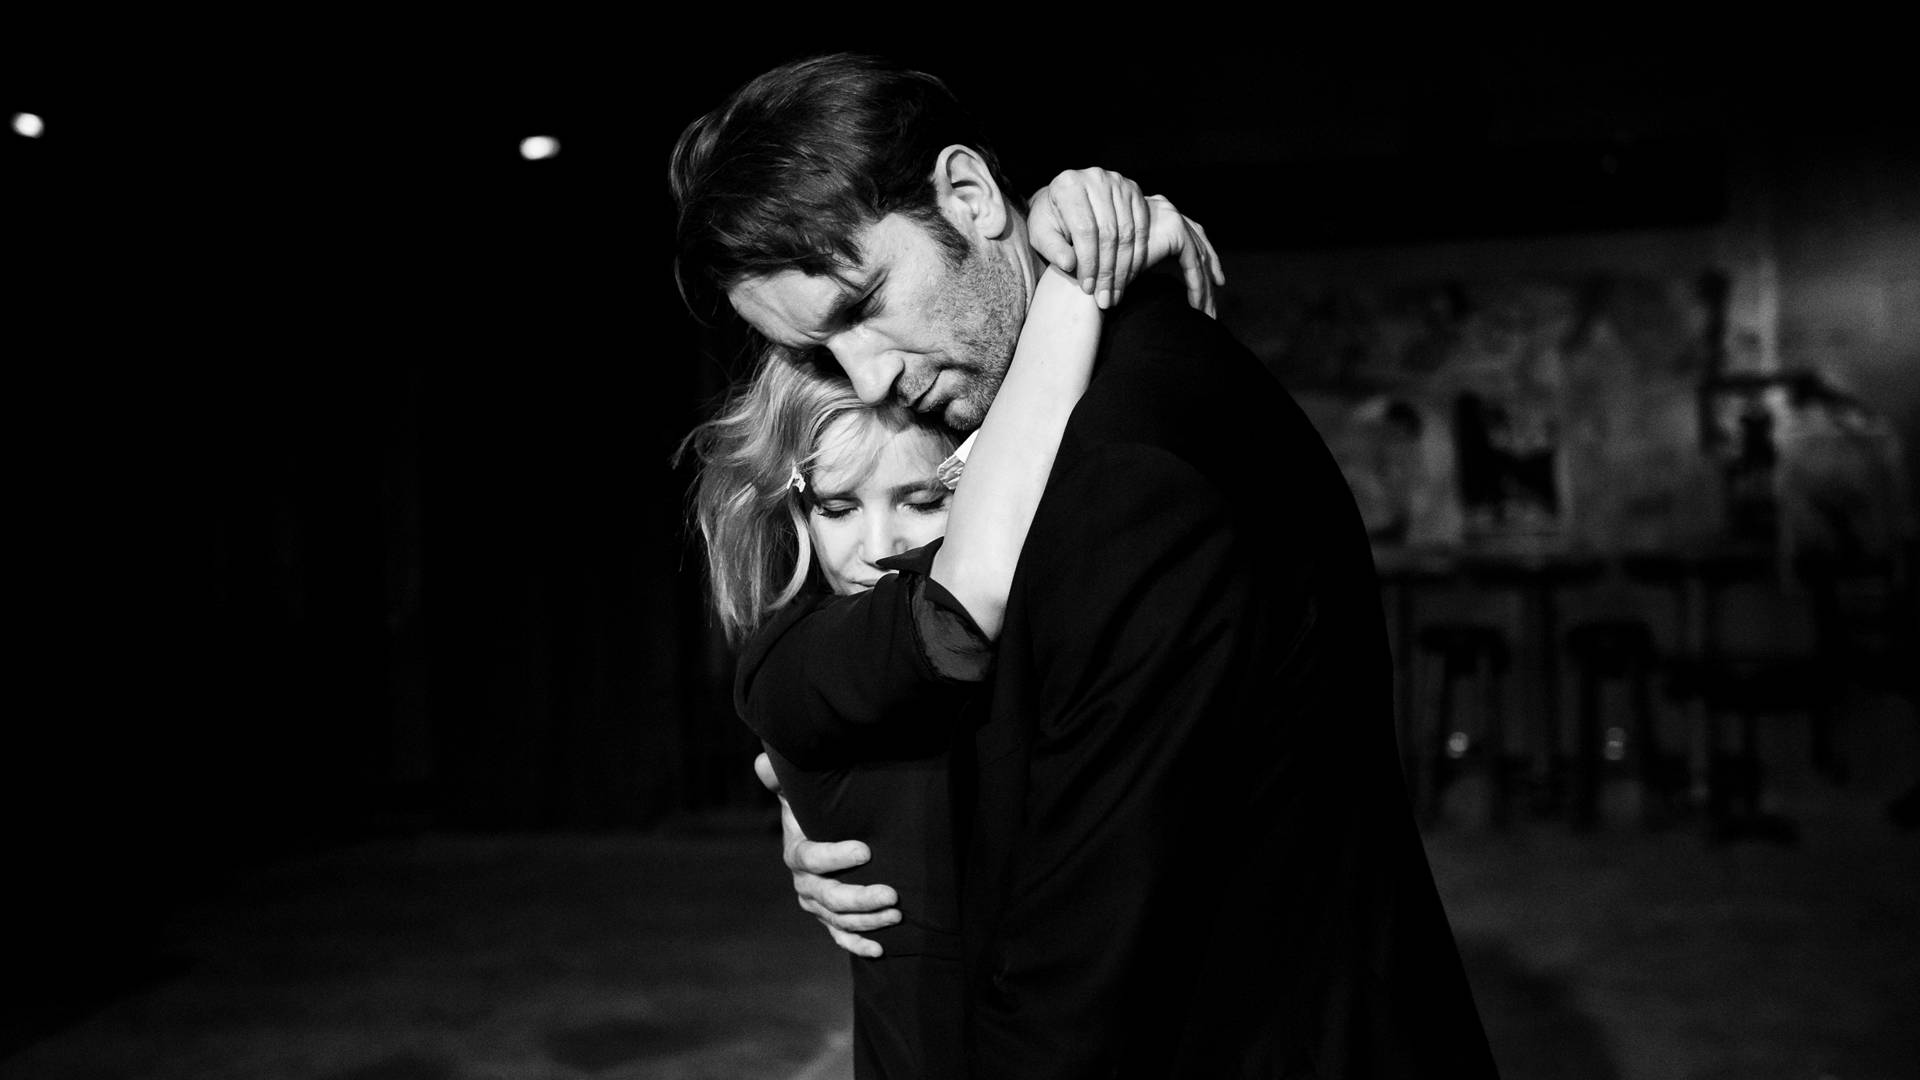 Joanna Kulig as Zula and Tomasz Kot as Wiktor in Paweł Pawlikowski's 'Cold War.' Amazon Studios